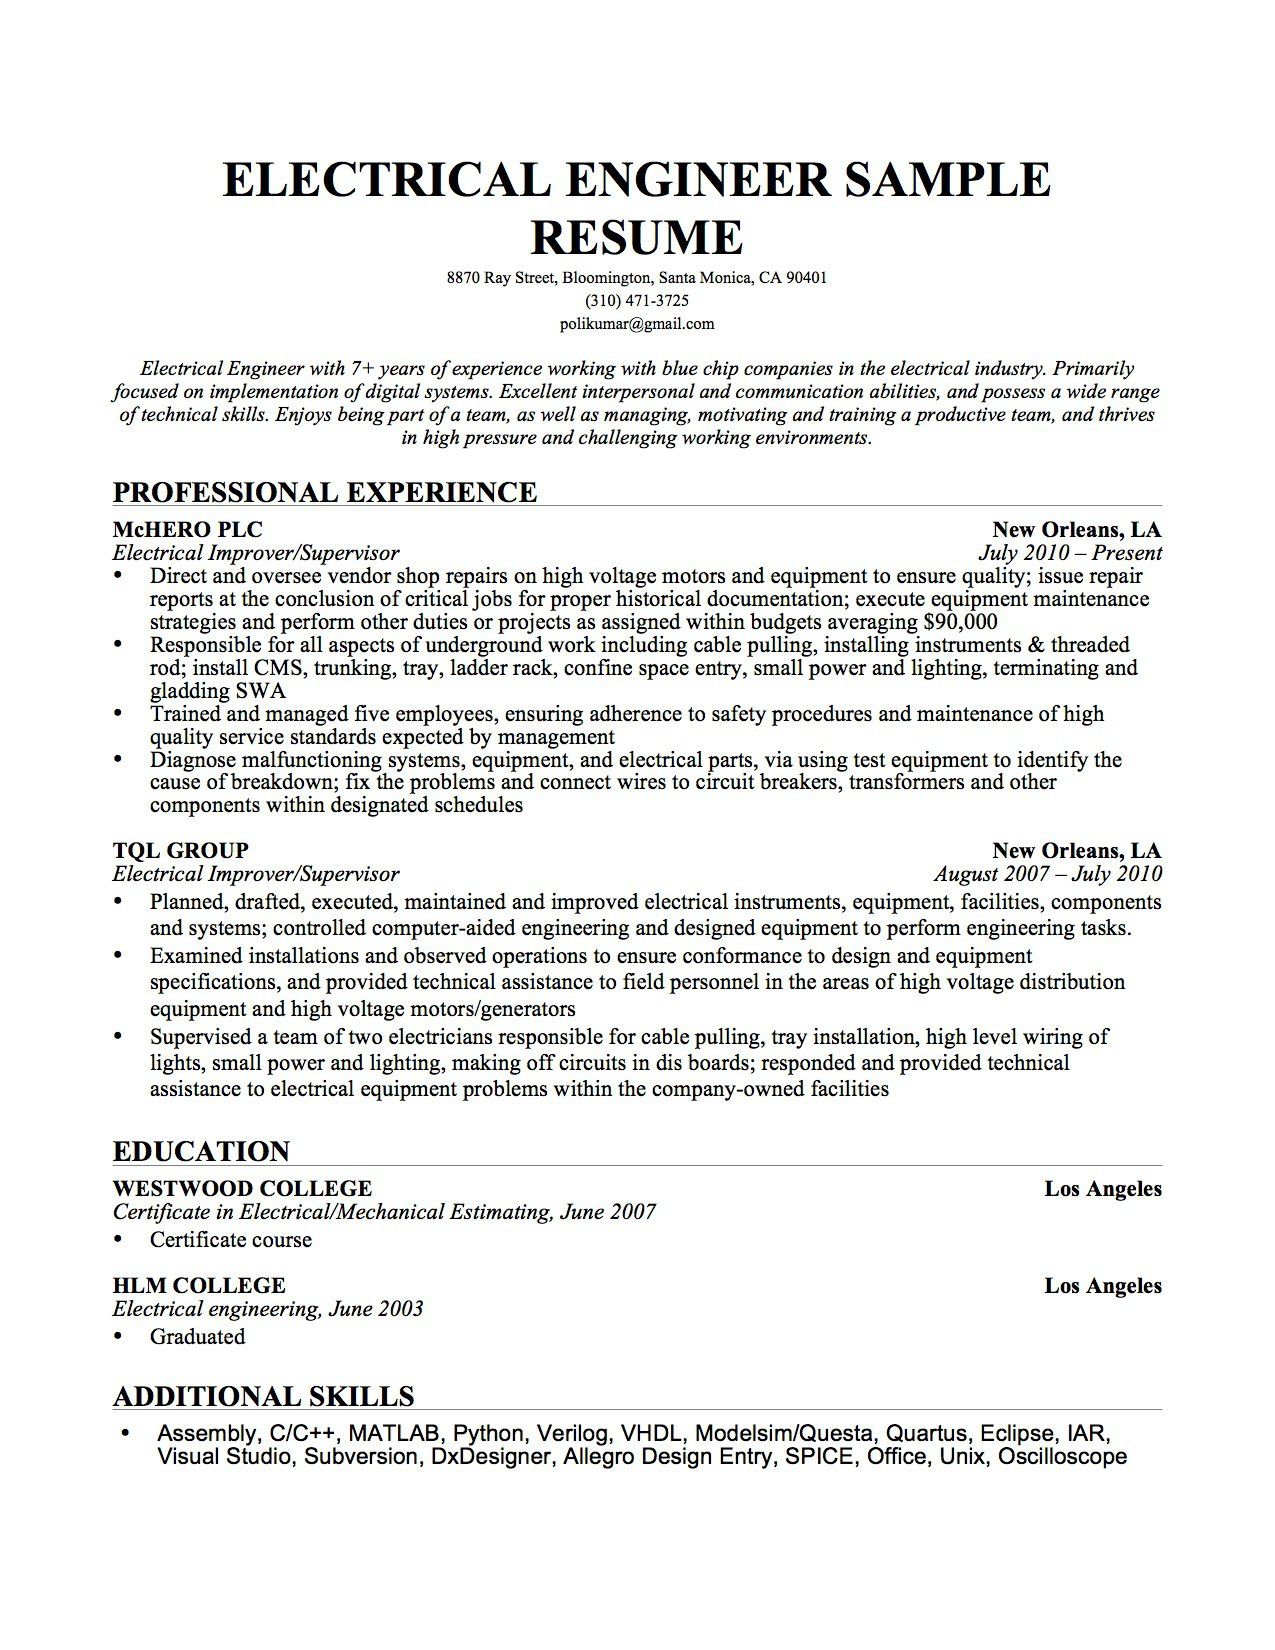 examples of resume cover letters for dental assistantexamples of engineering resume cover letter samplesfirst restore instance no work save fragment instance android